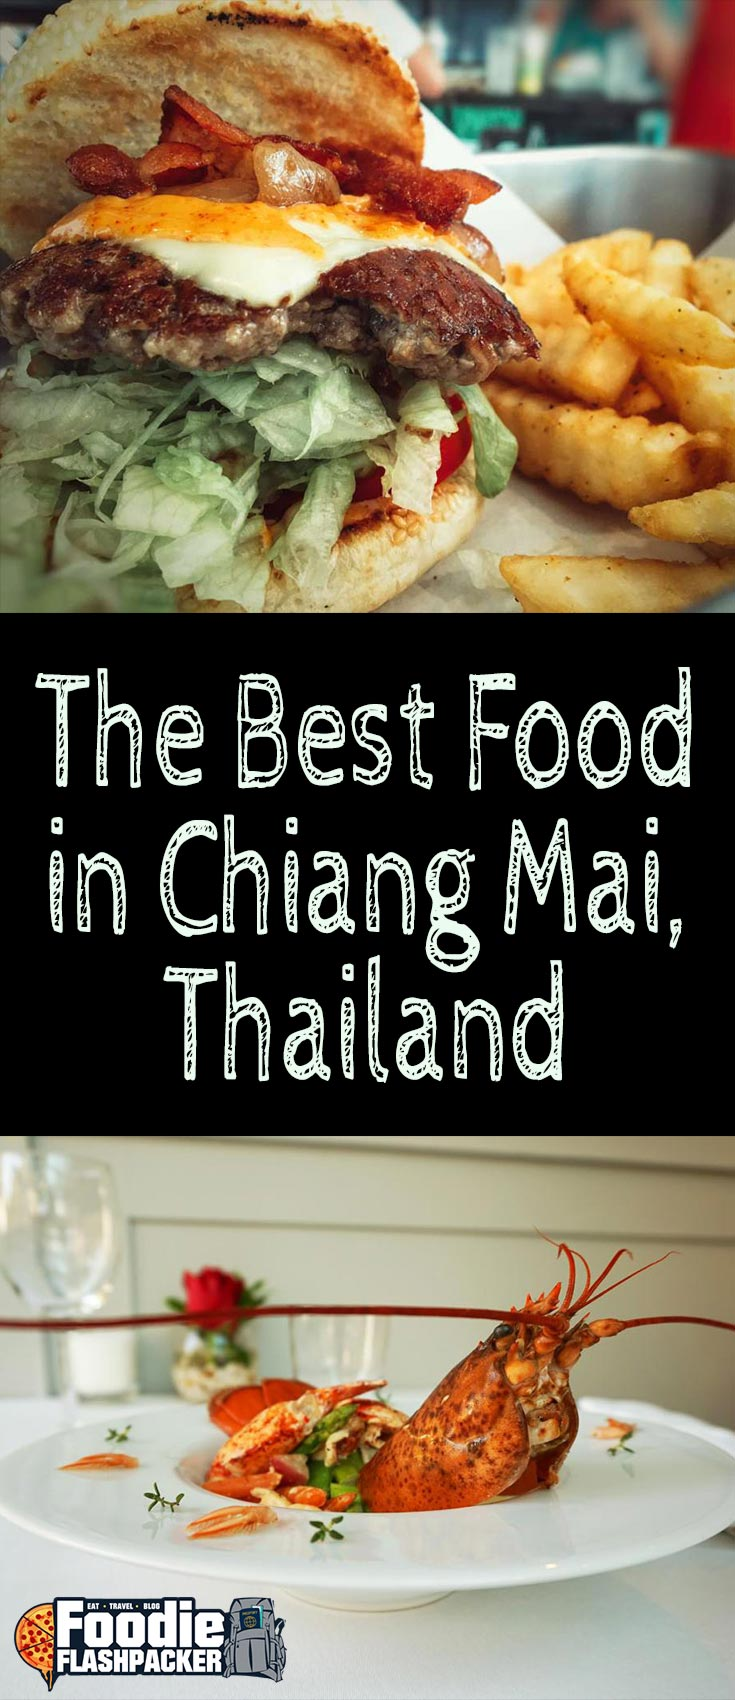 From local street food to brunch at high-end resorts, this guide will show you the best places to eat in Chiang Mai!